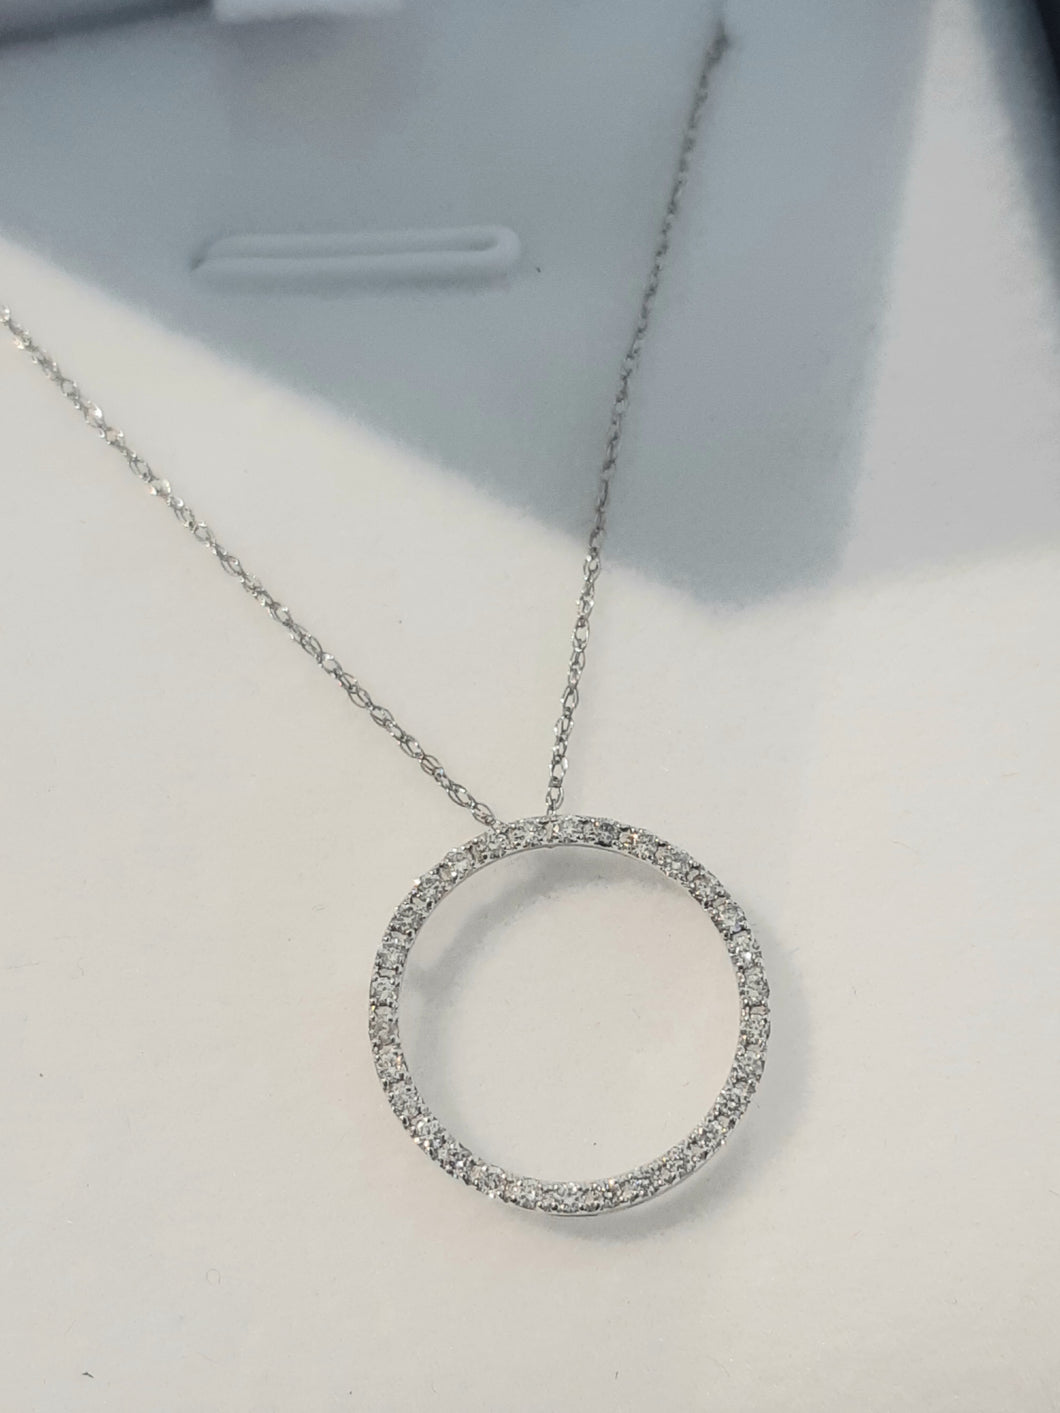 0.25cts [30] Round Brilliant Cut Diamonds | Circle of Life Pendant with Chain | 9kt White Gold